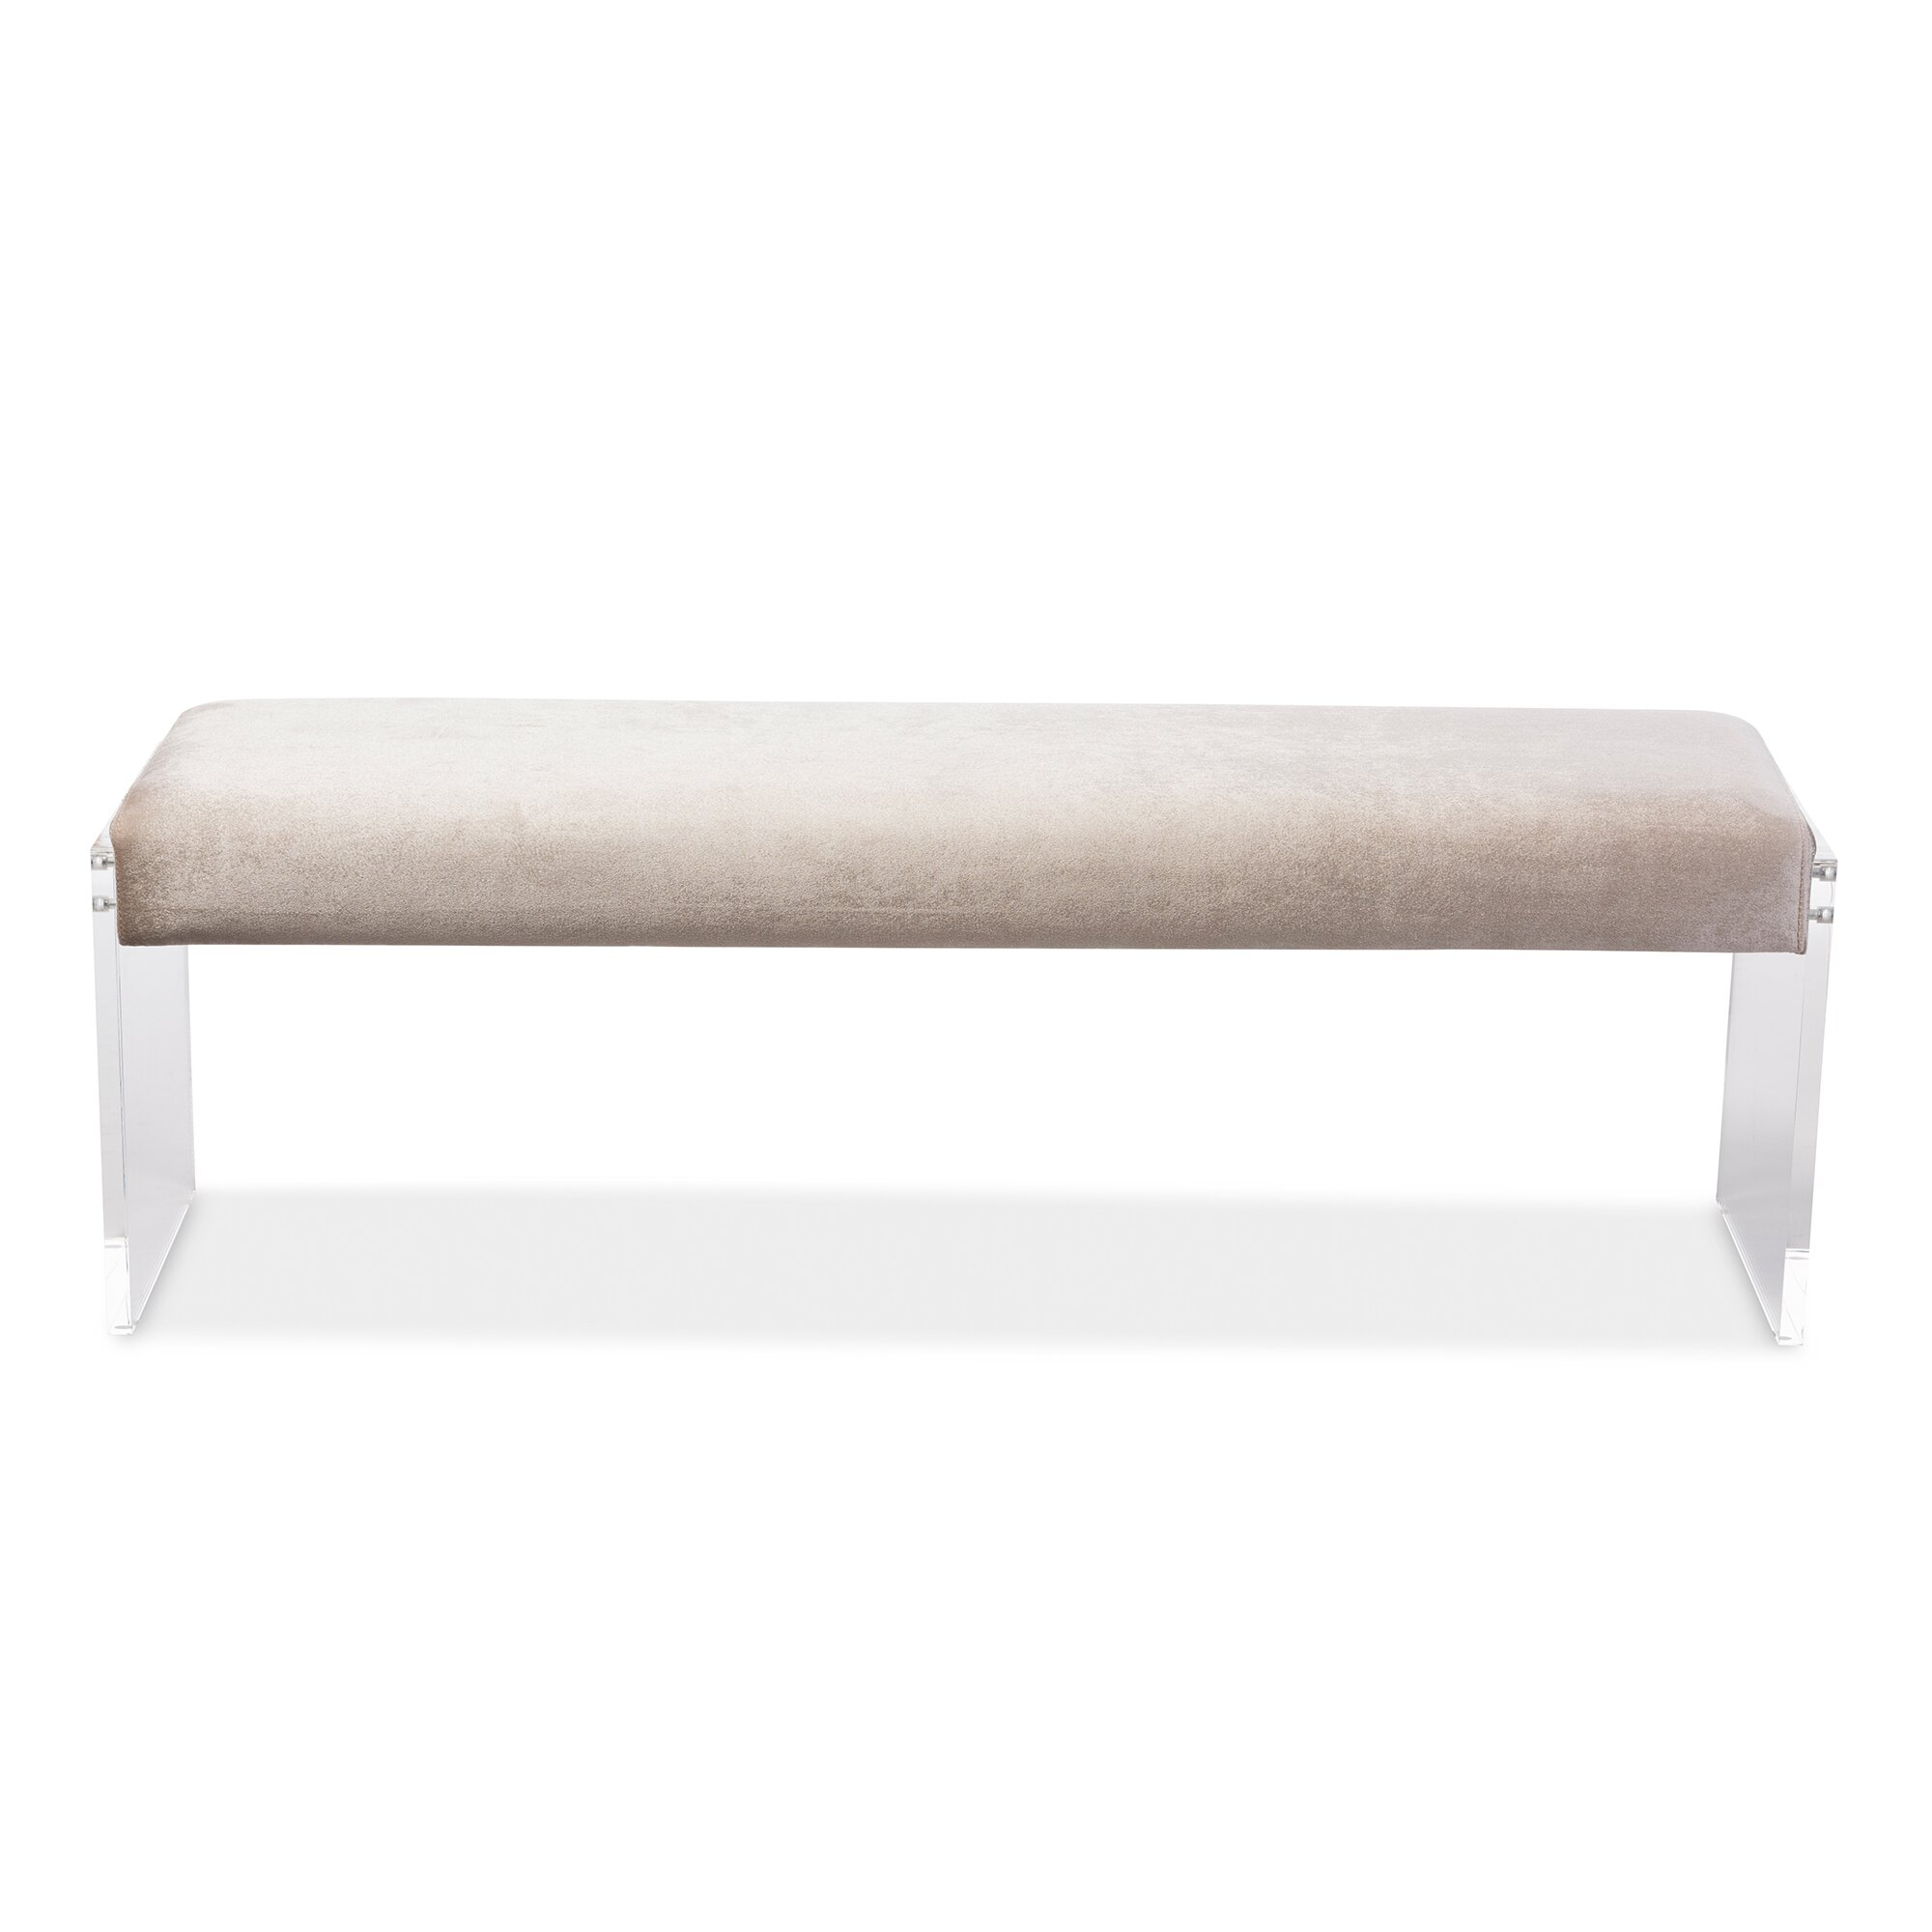 Bedroom bench with arms - Baxton Studio Hildon Upholstered Bedroom Bench